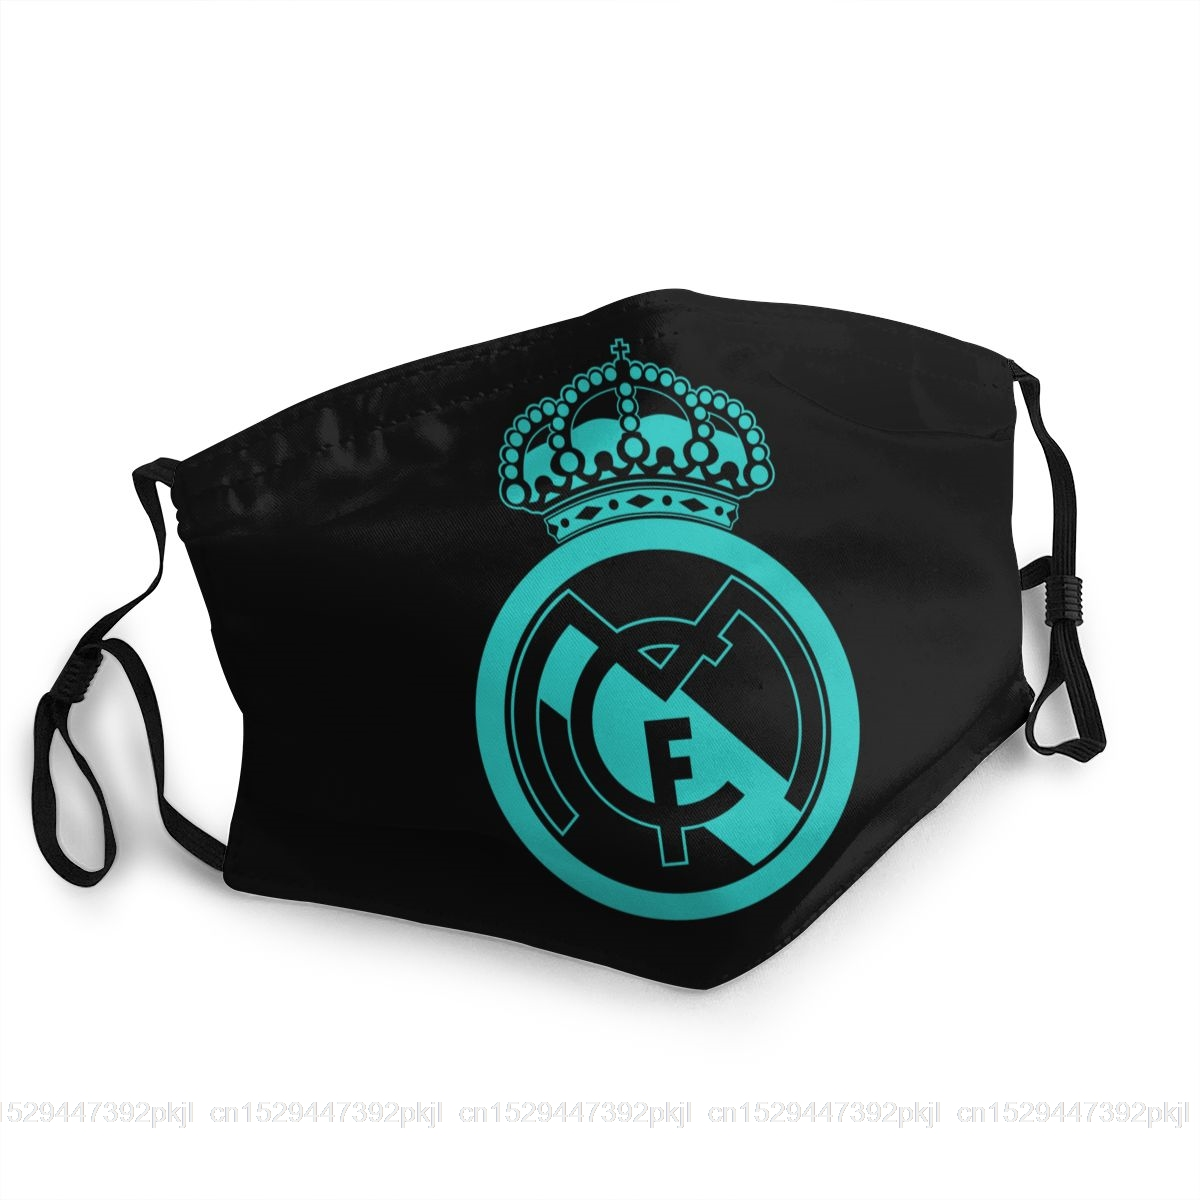 Classic Real Madrided Logo Mask Unisex Adult Dust Mask